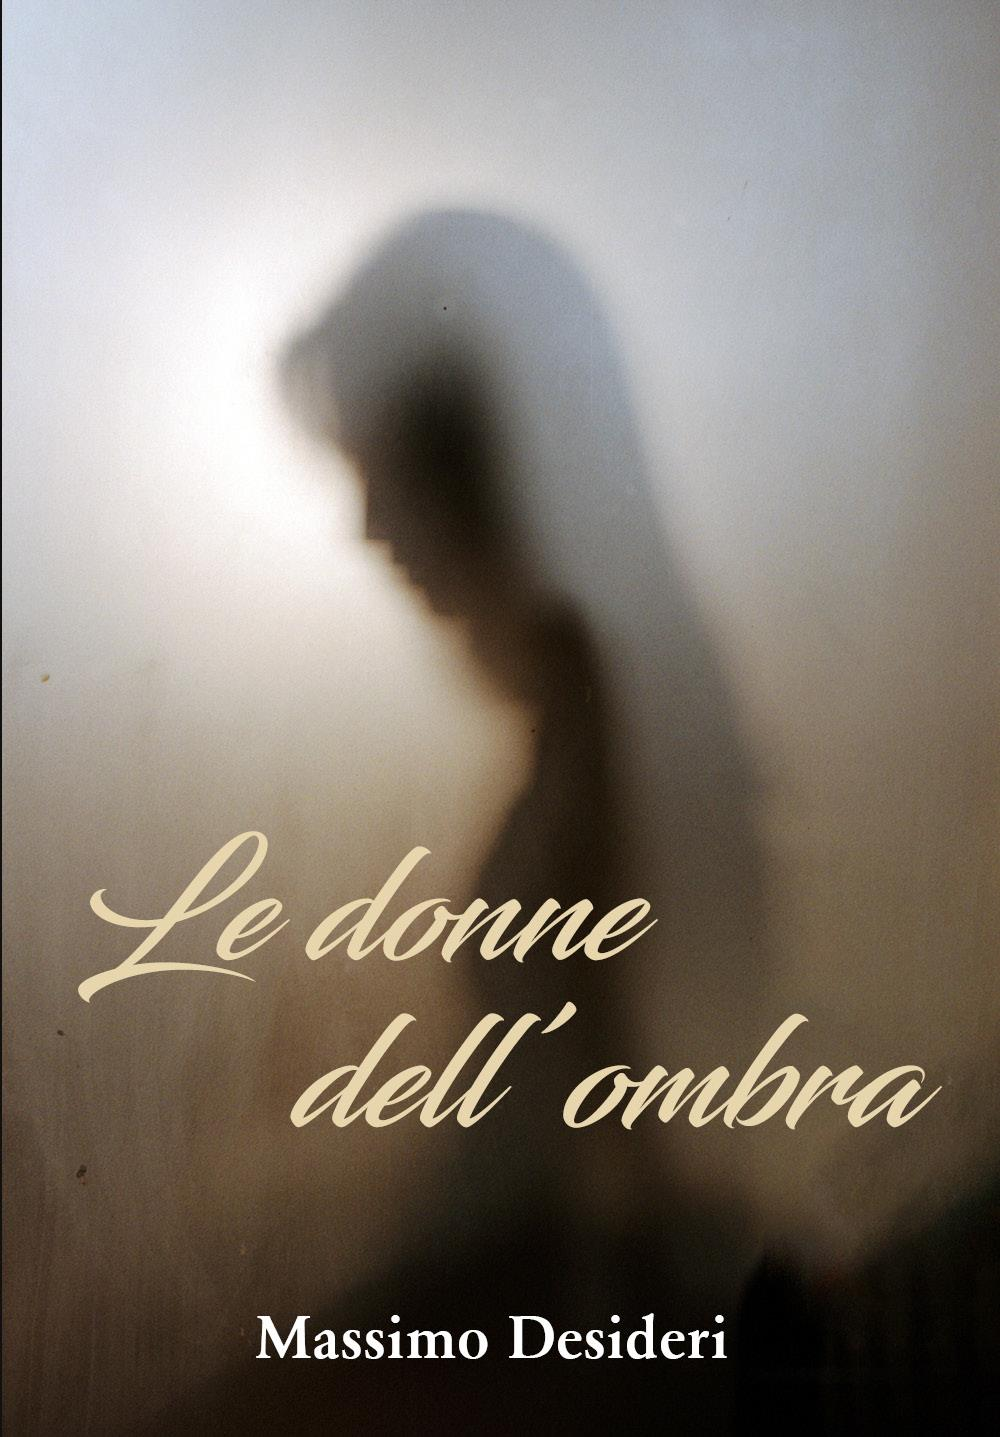 Le donne dell'ombra